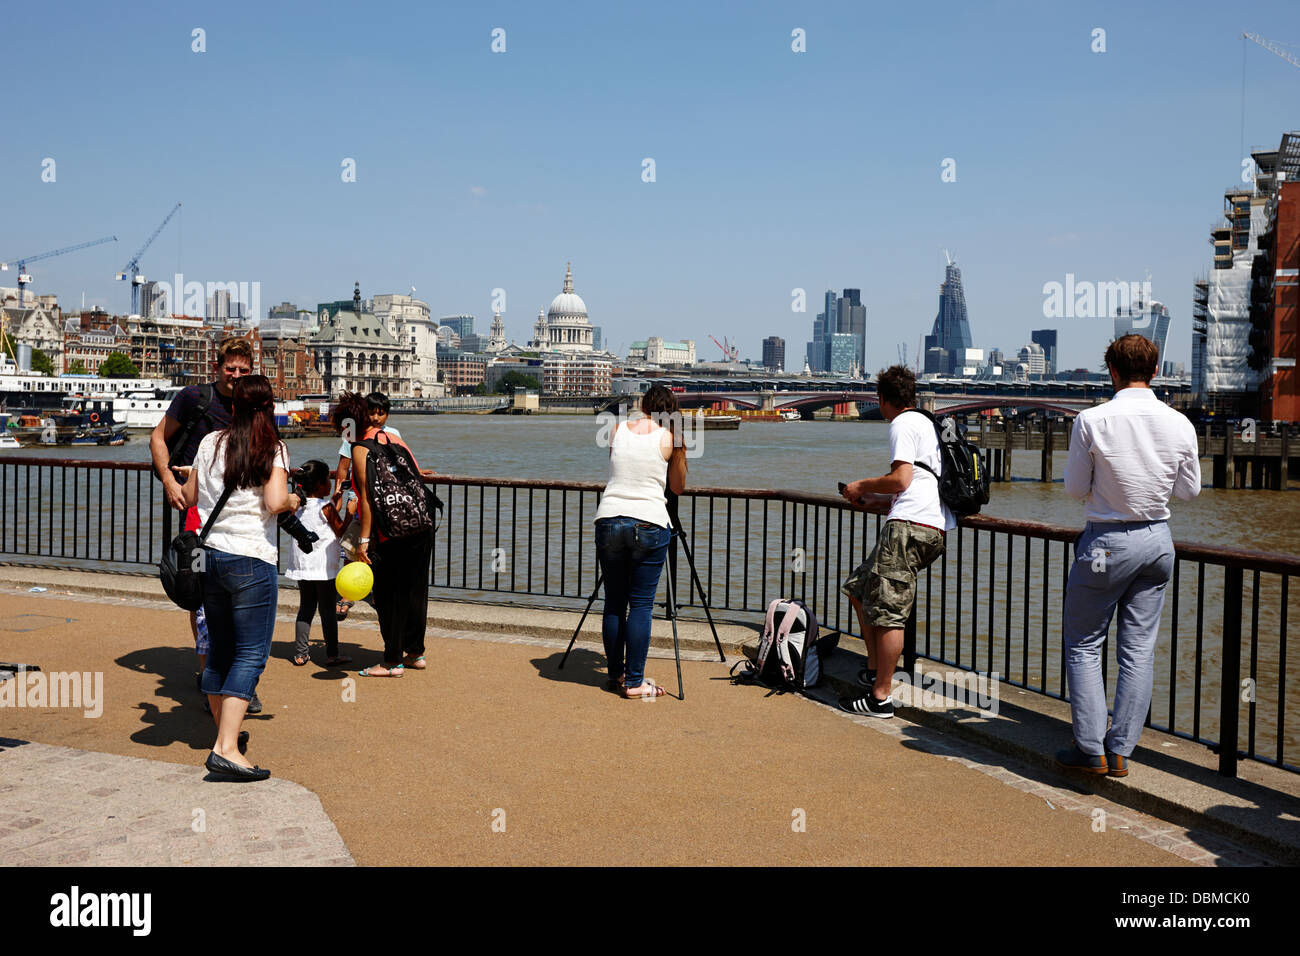 tourists taking photos at viewpoint on the south bank of the river thames London England UK - Stock Image